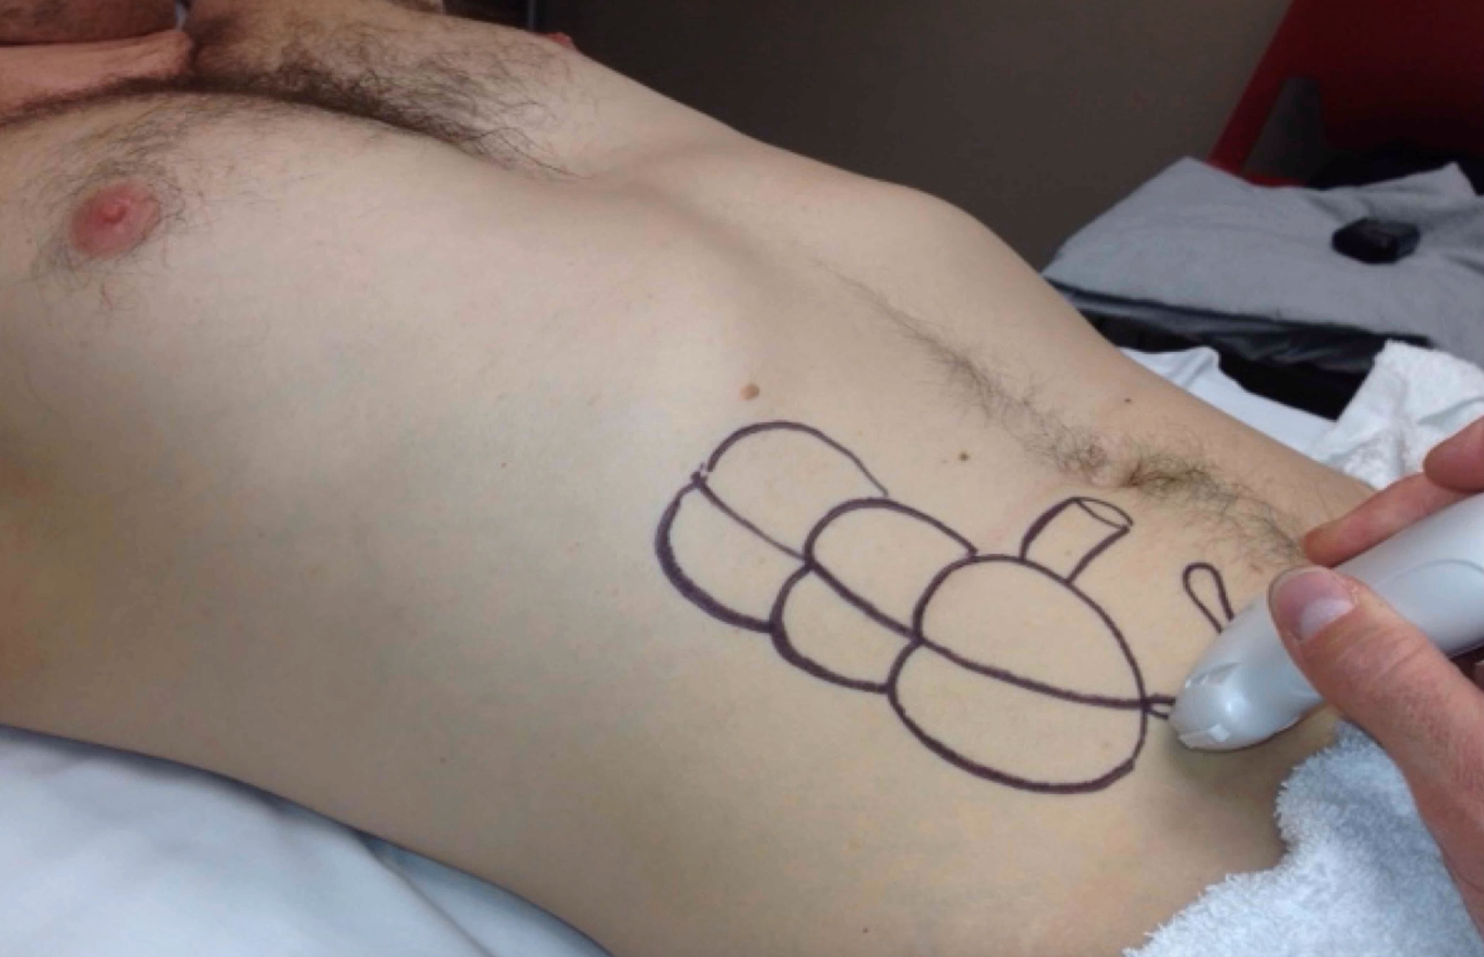 Appendicitis Ultrasound Reboot With Ultrasoundmd Turns Out